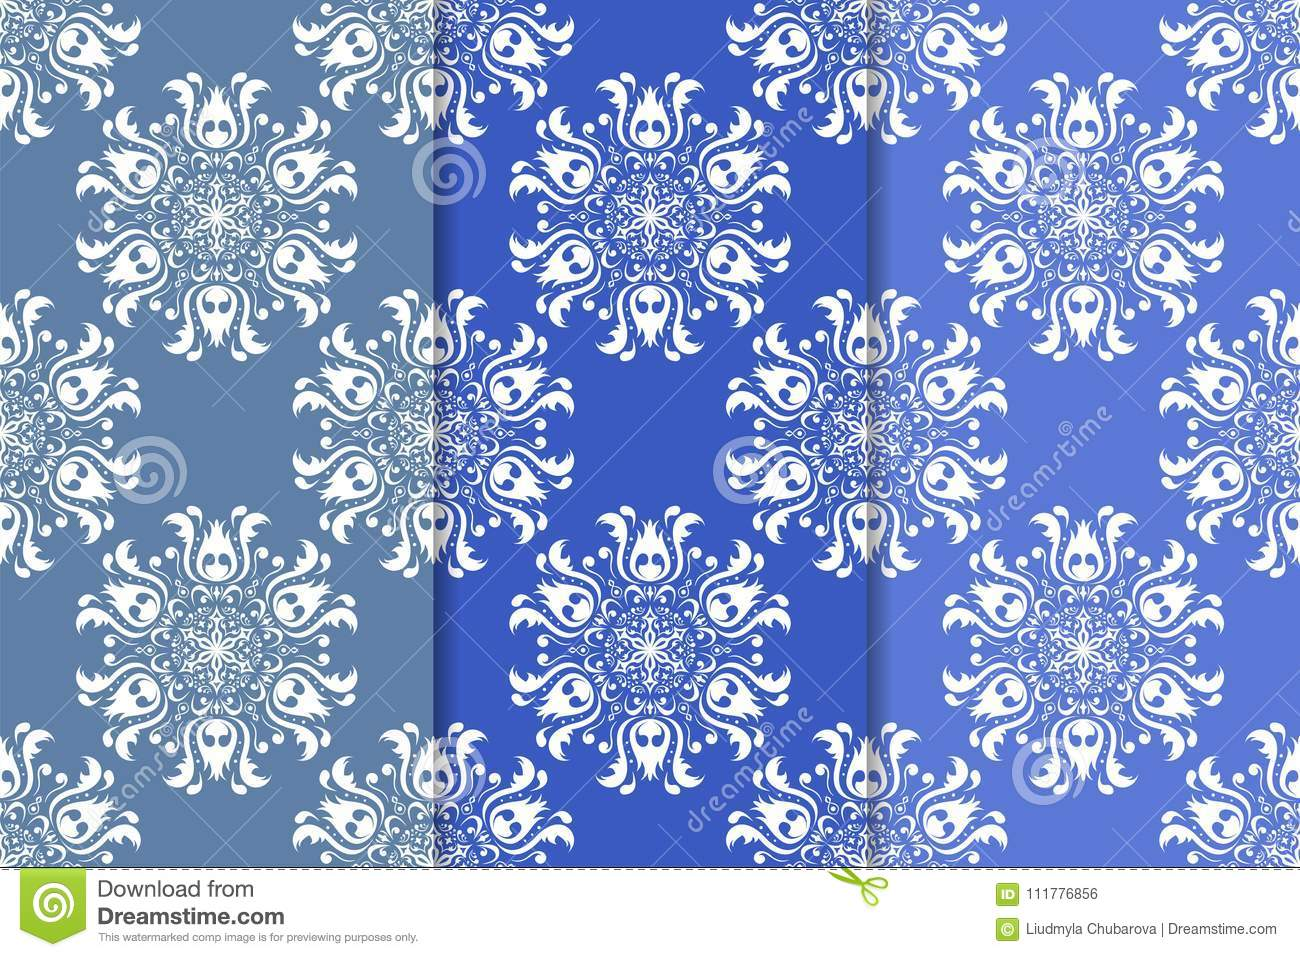 Set of floral ornaments. Vertical blue seamless patterns